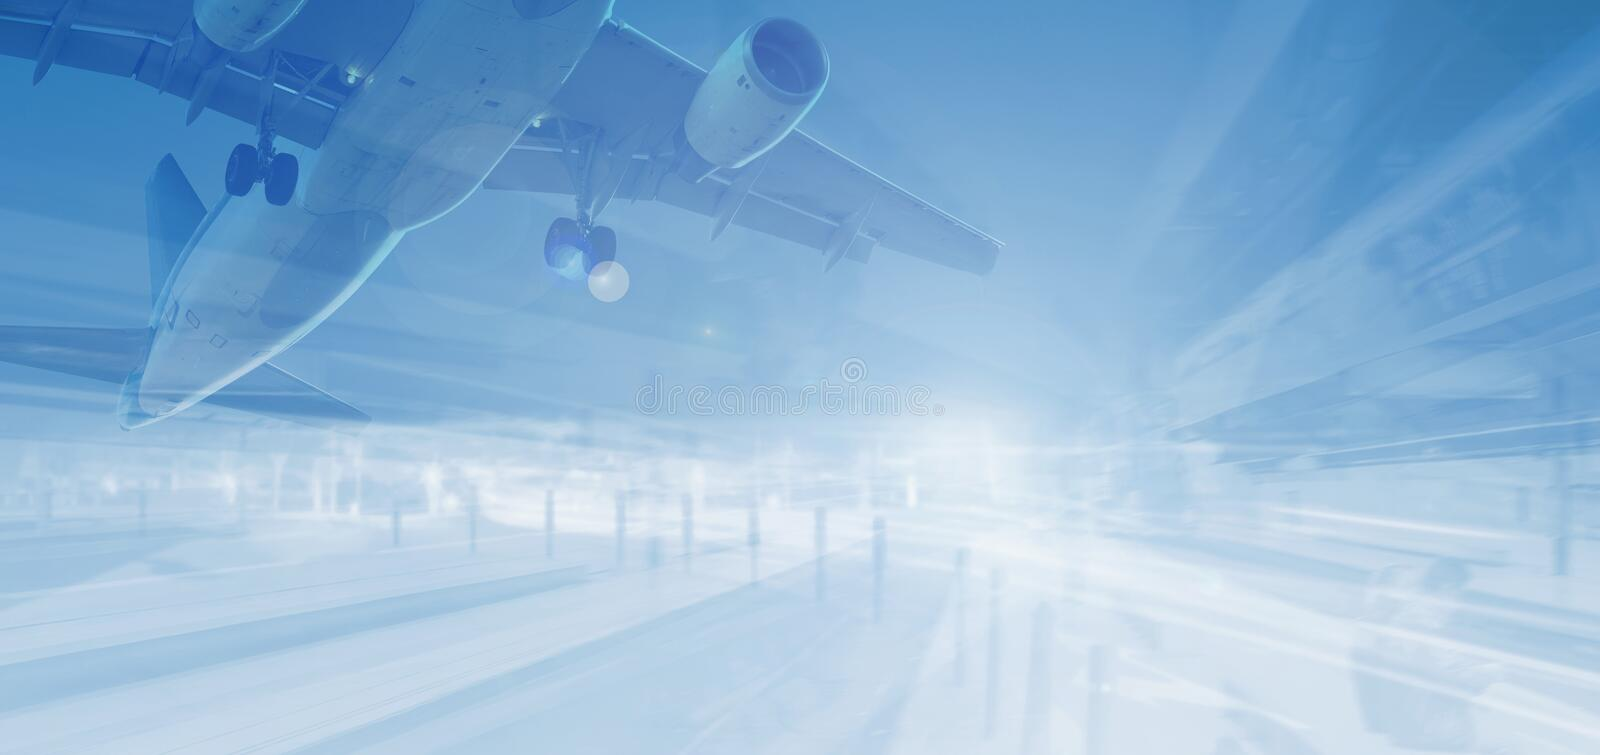 Plane on abstract background. Plane flying high on abstract background with great speed vector illustration